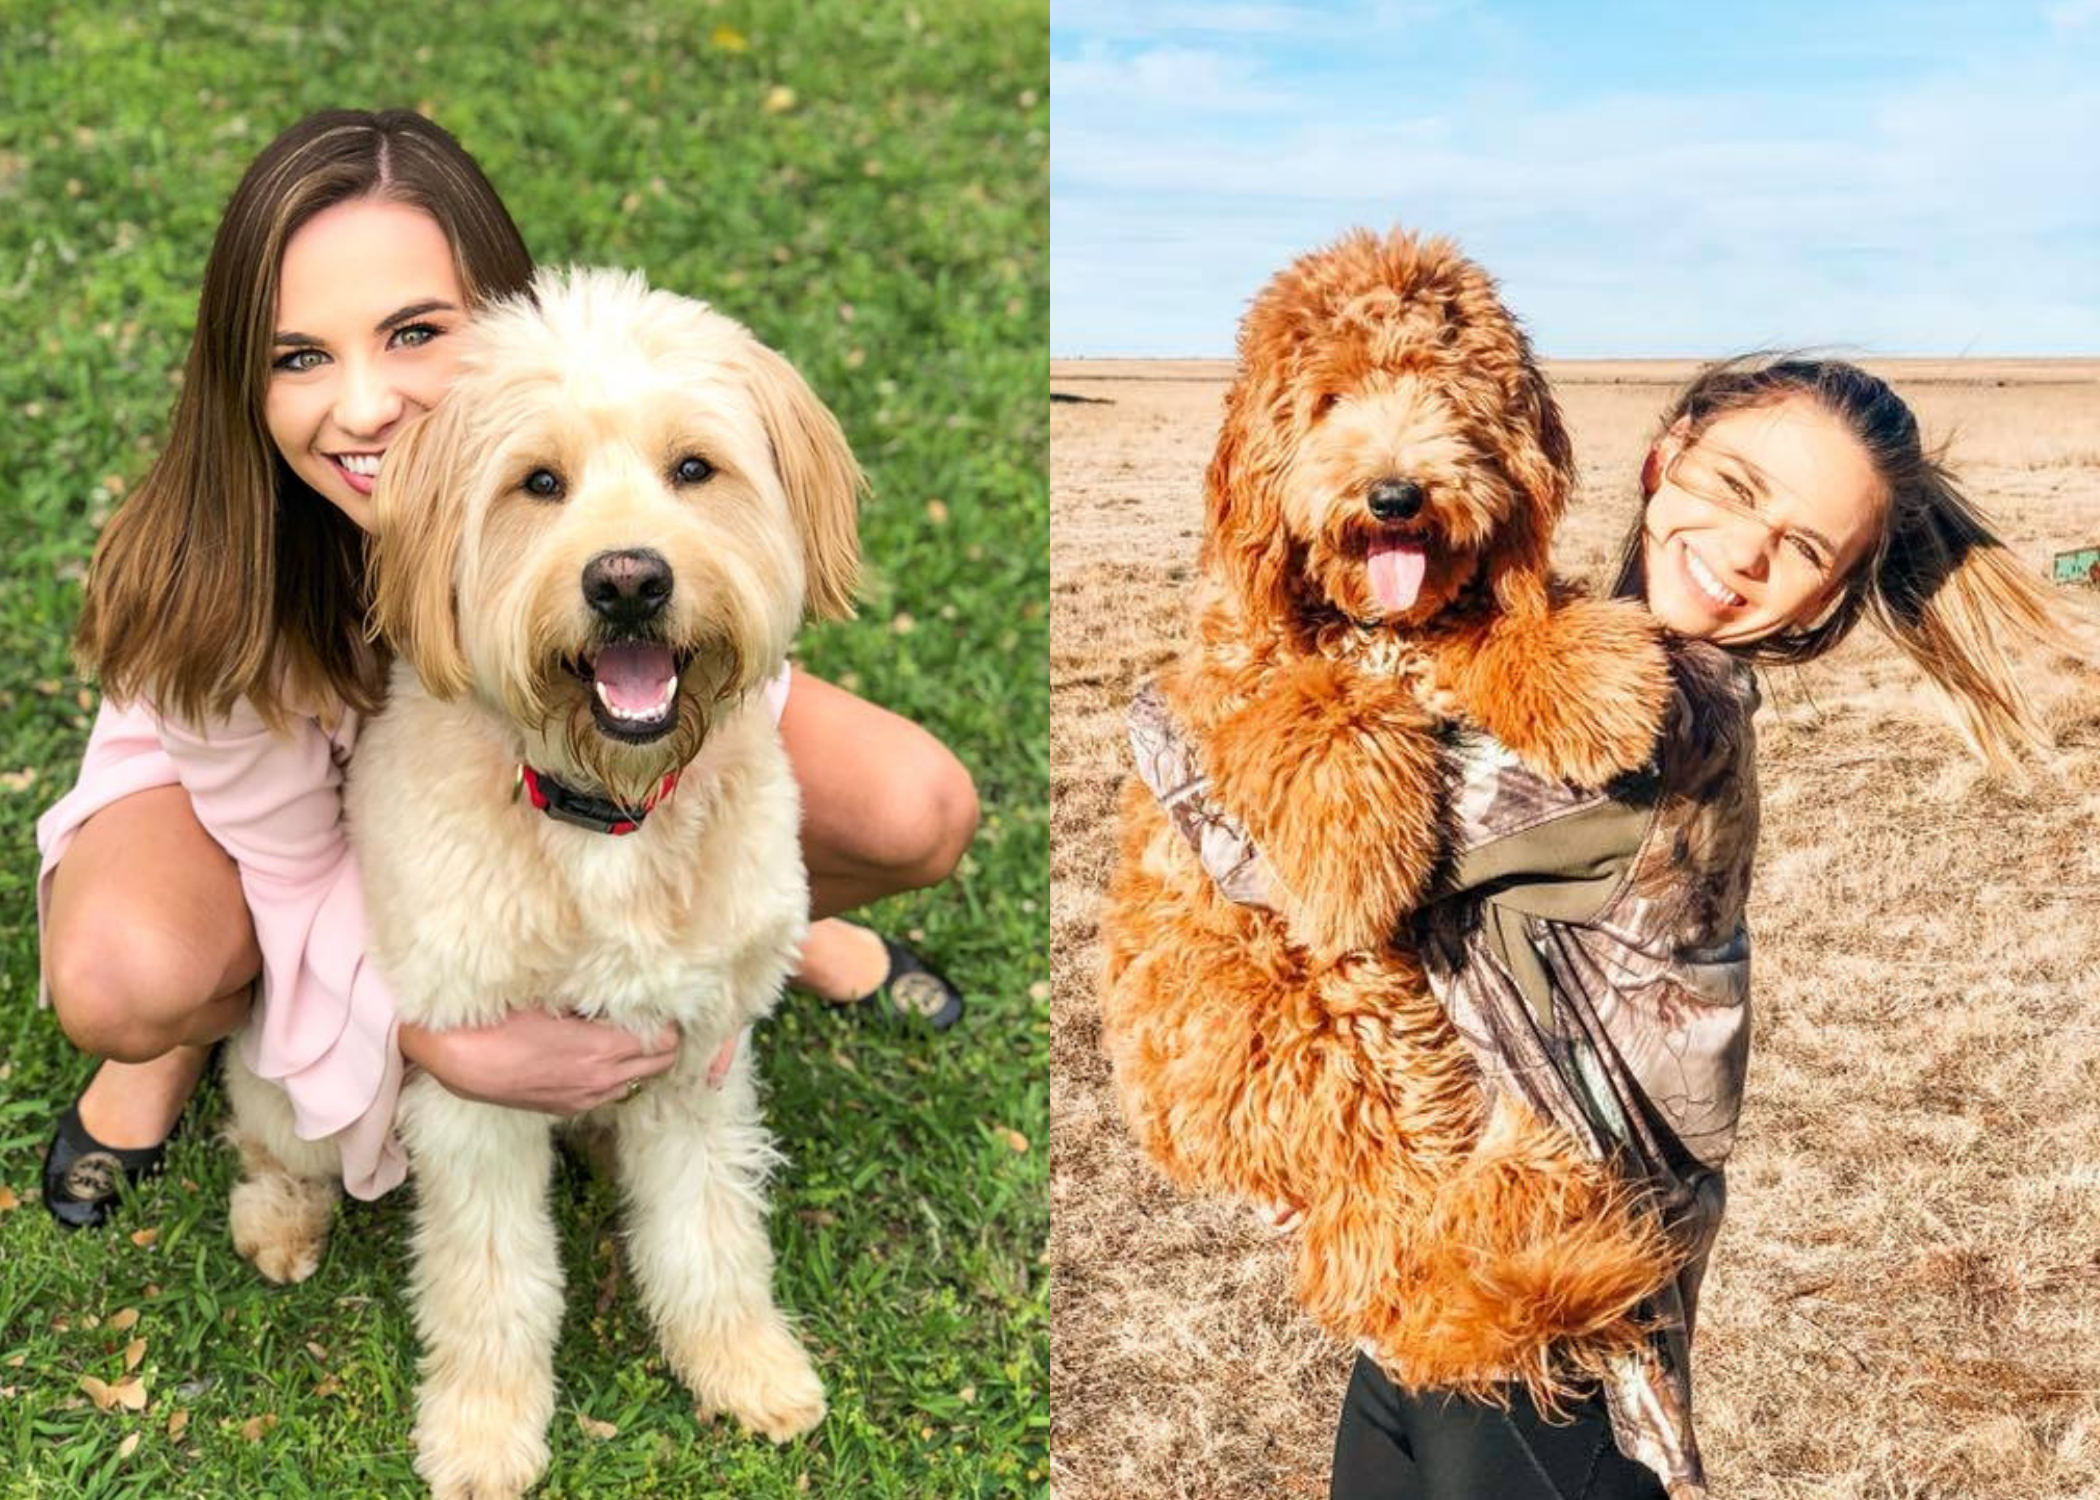 MAPLE & MARLEY - Meet our wedding coordinator, Morgan's two golden-doodles, Maple & Marley. Maple likes long walks to Pet's Mart and anything that involves a treat. Marley will do just about anything to get you to throw her ball. All she thinks and dreams about is playing fetch.